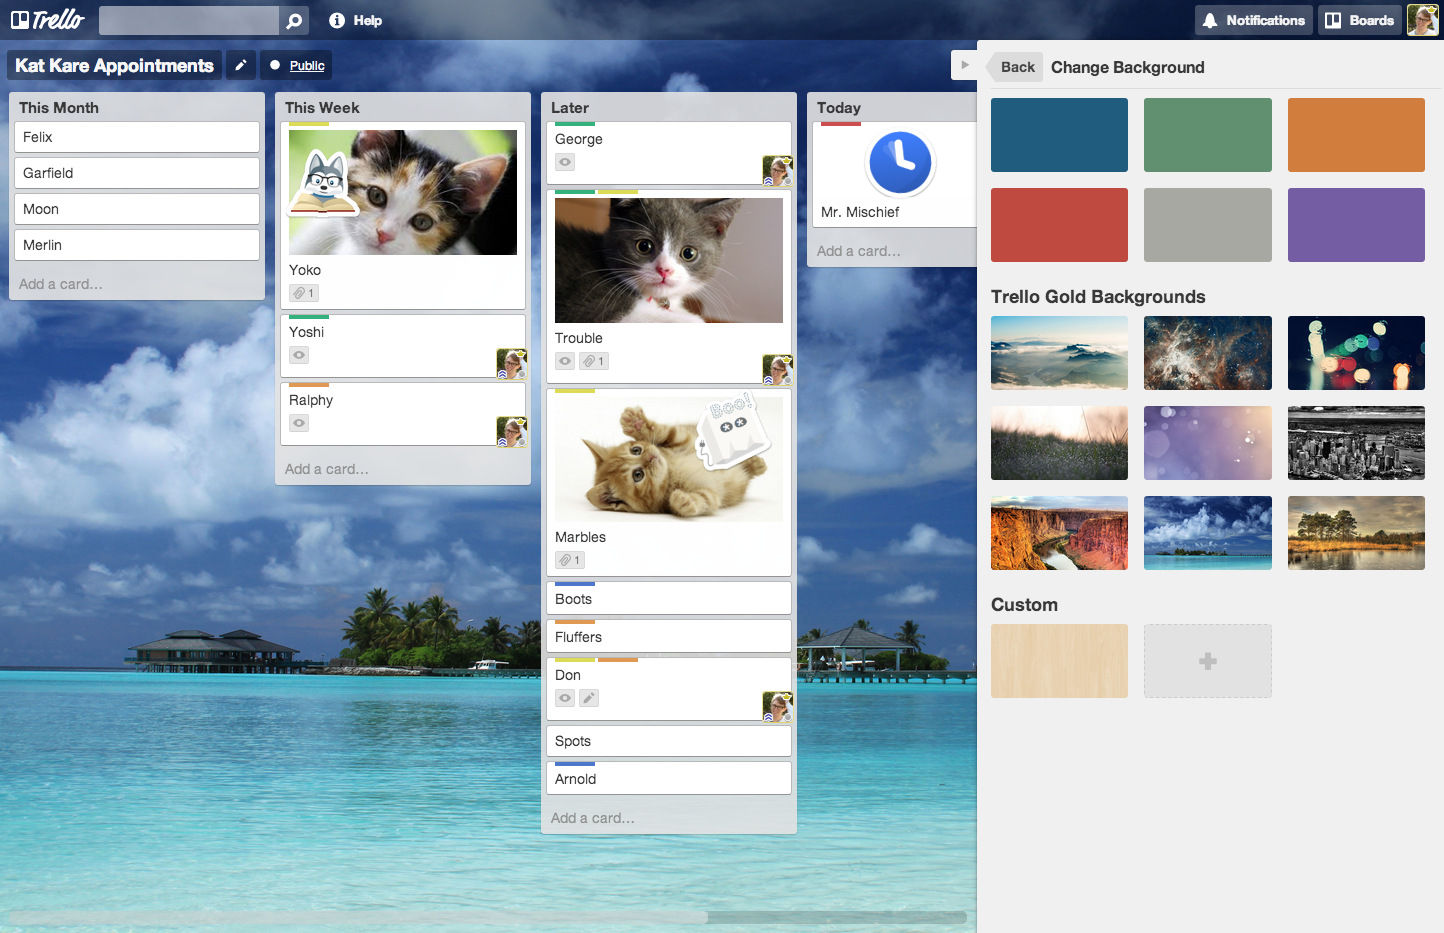 how to delete a board of trello